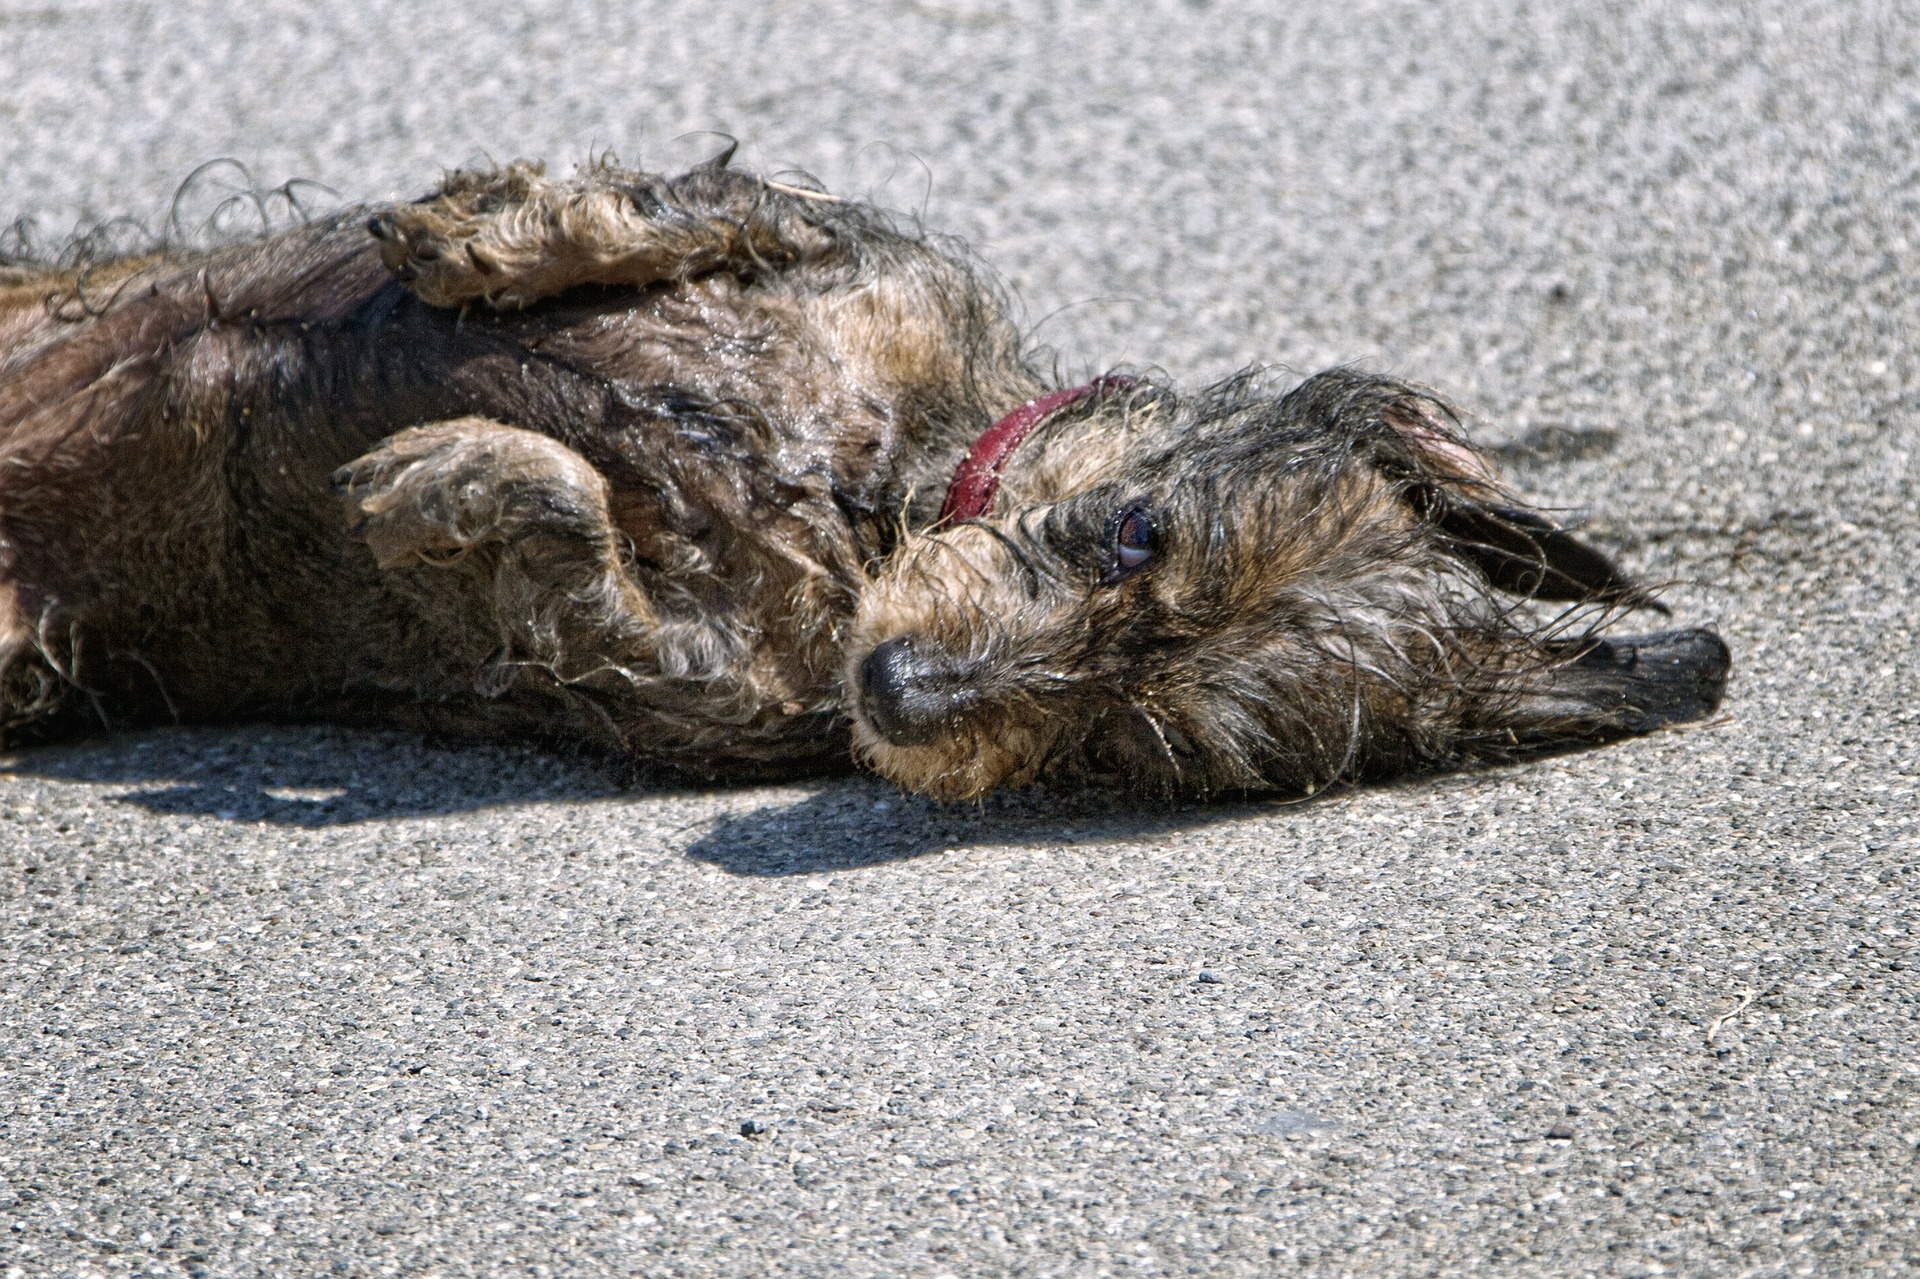 Why dogs roll on dead animals